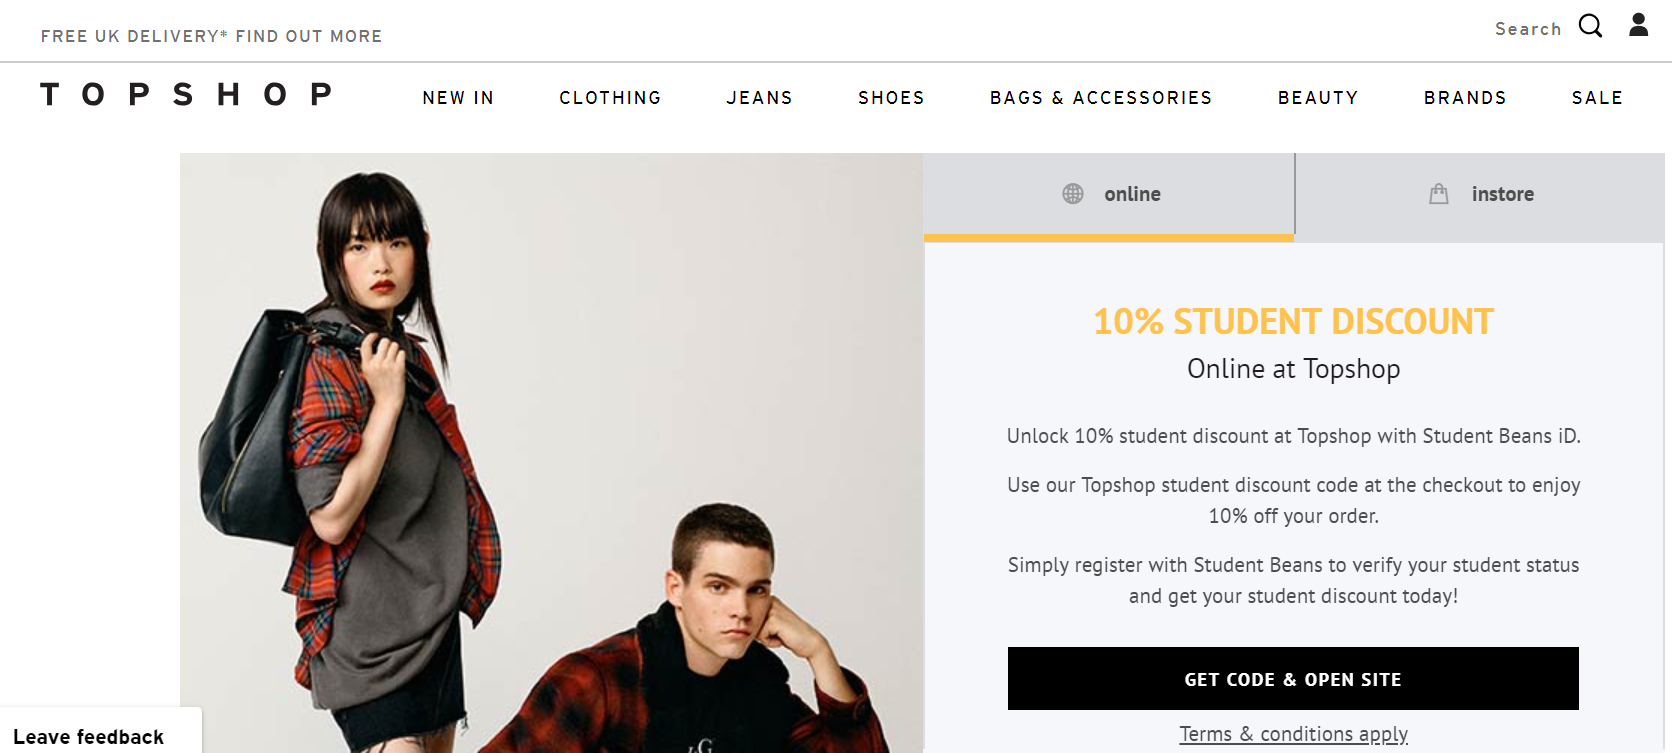 Photo: Screenshot from Topshop website